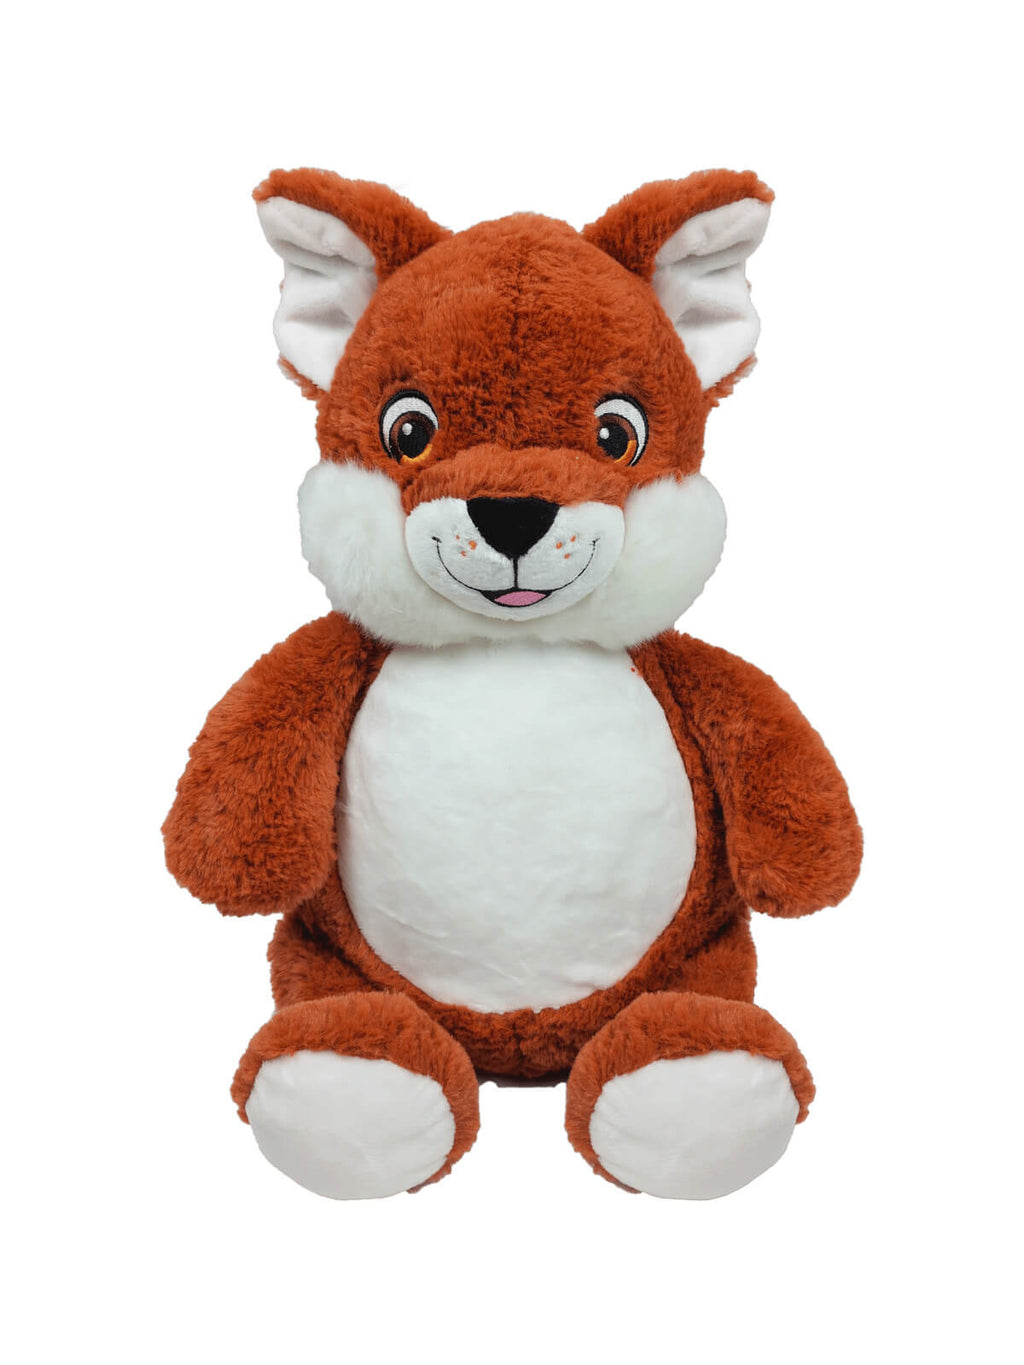 Personalised Teddy - Signature Fox - D'lighted